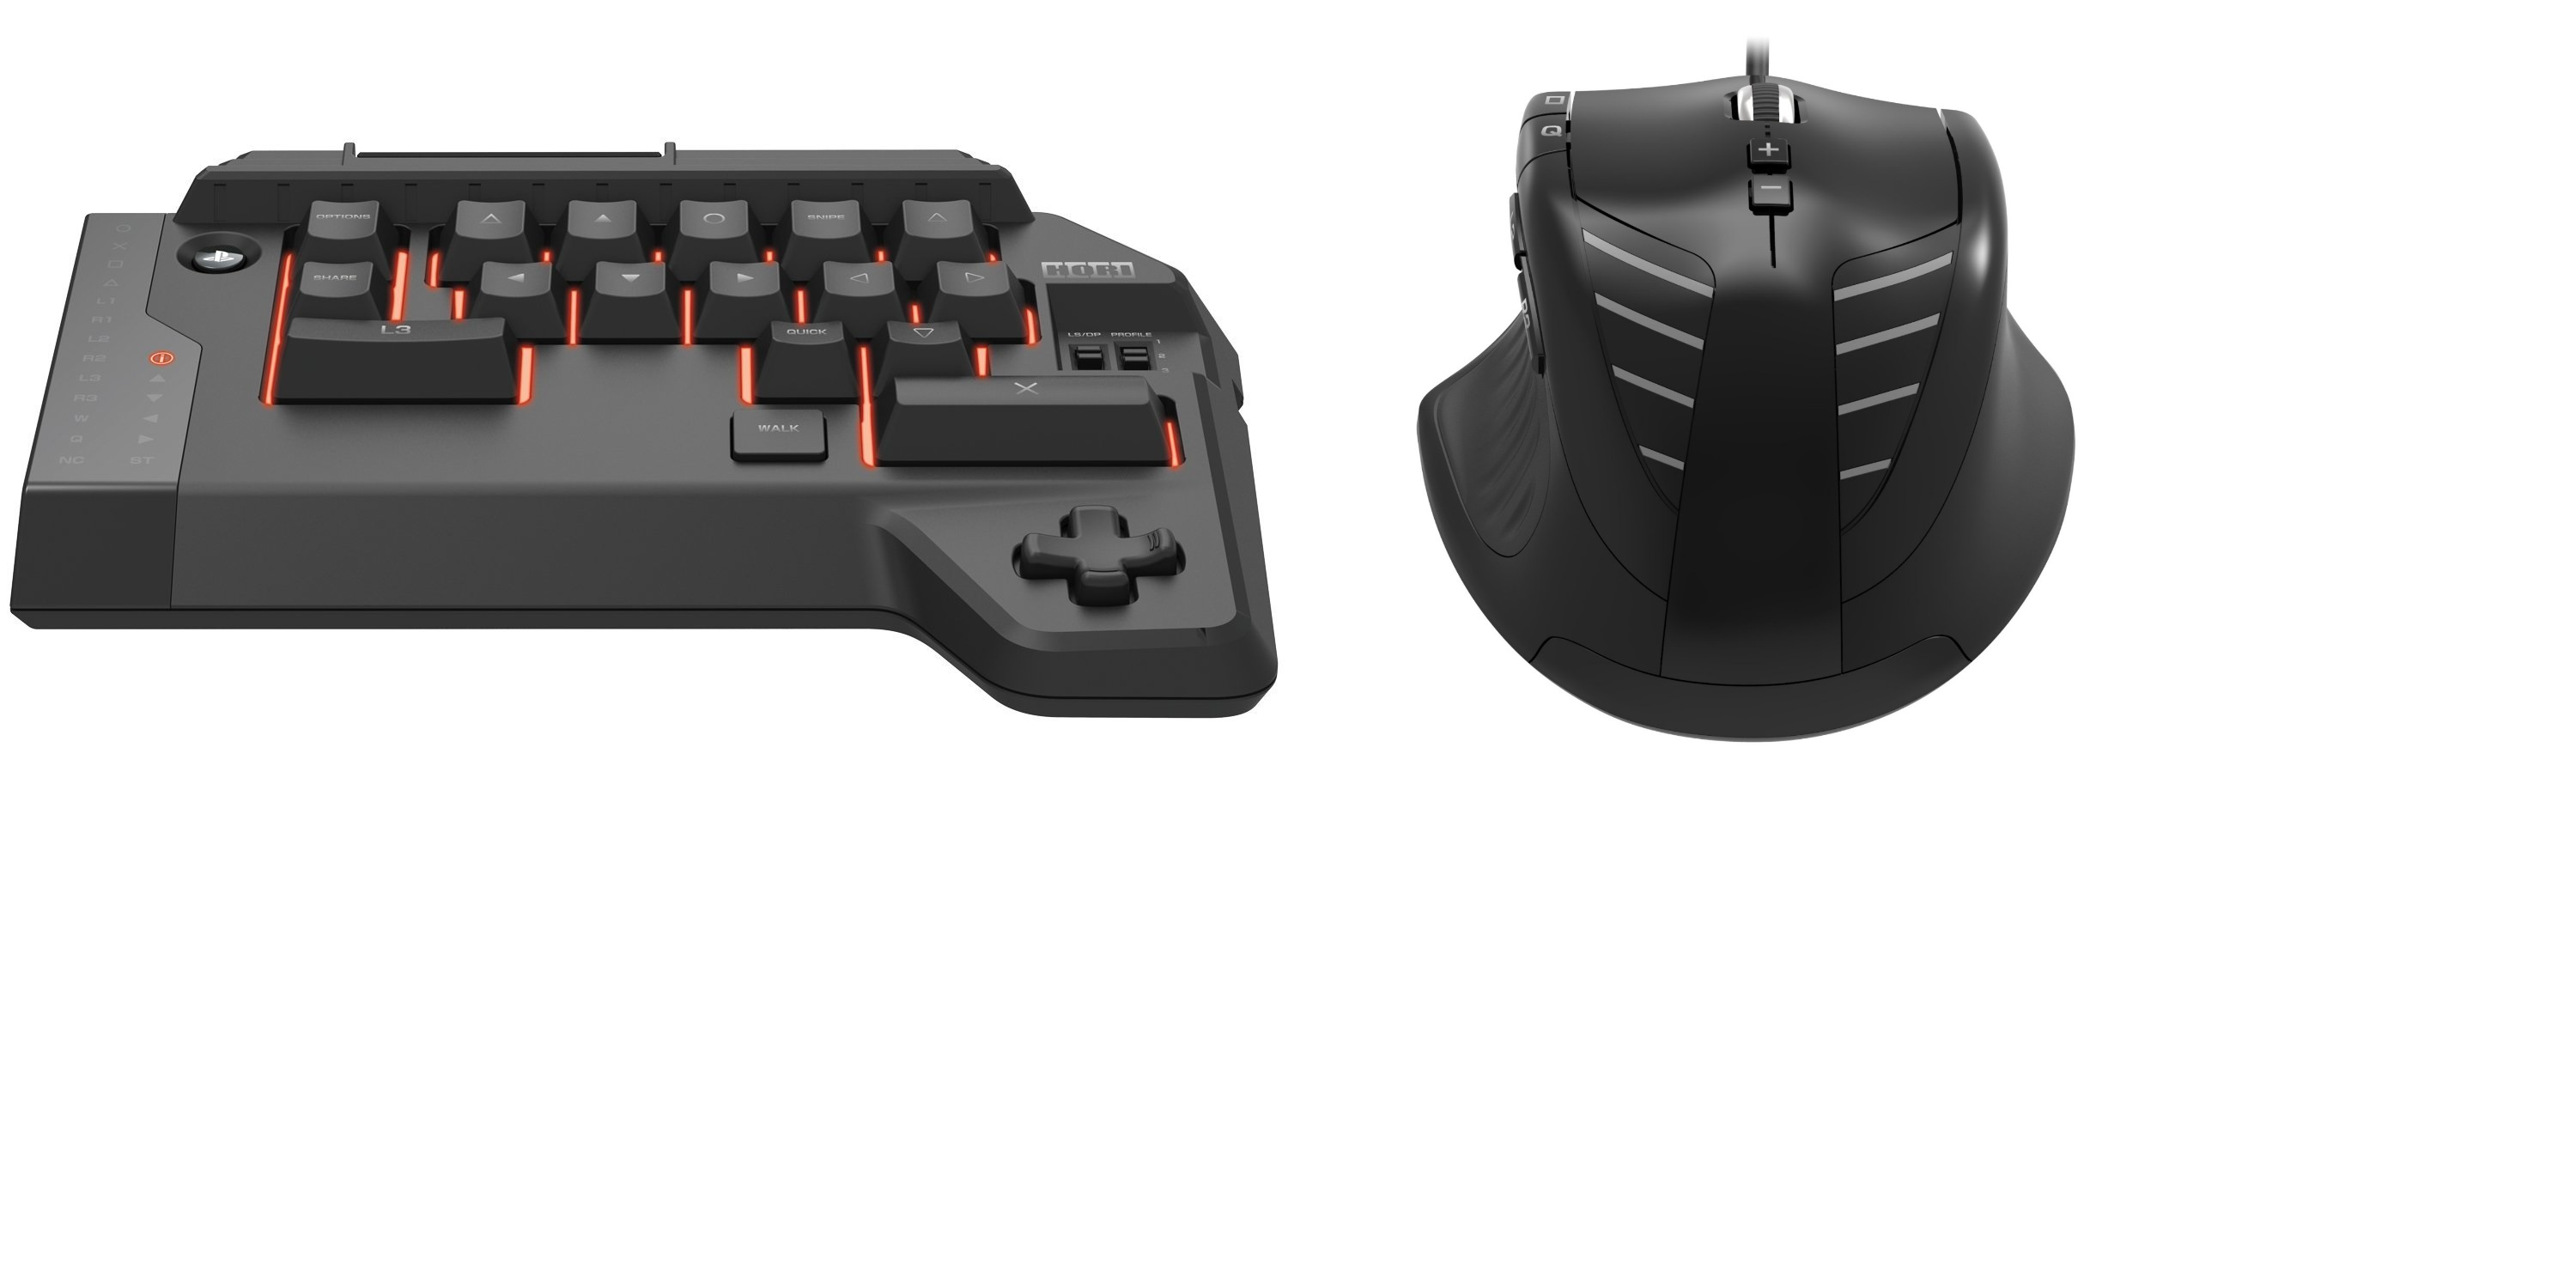 Hori delivers PS4 keyboard/mouse controller in time for Black Ops 3